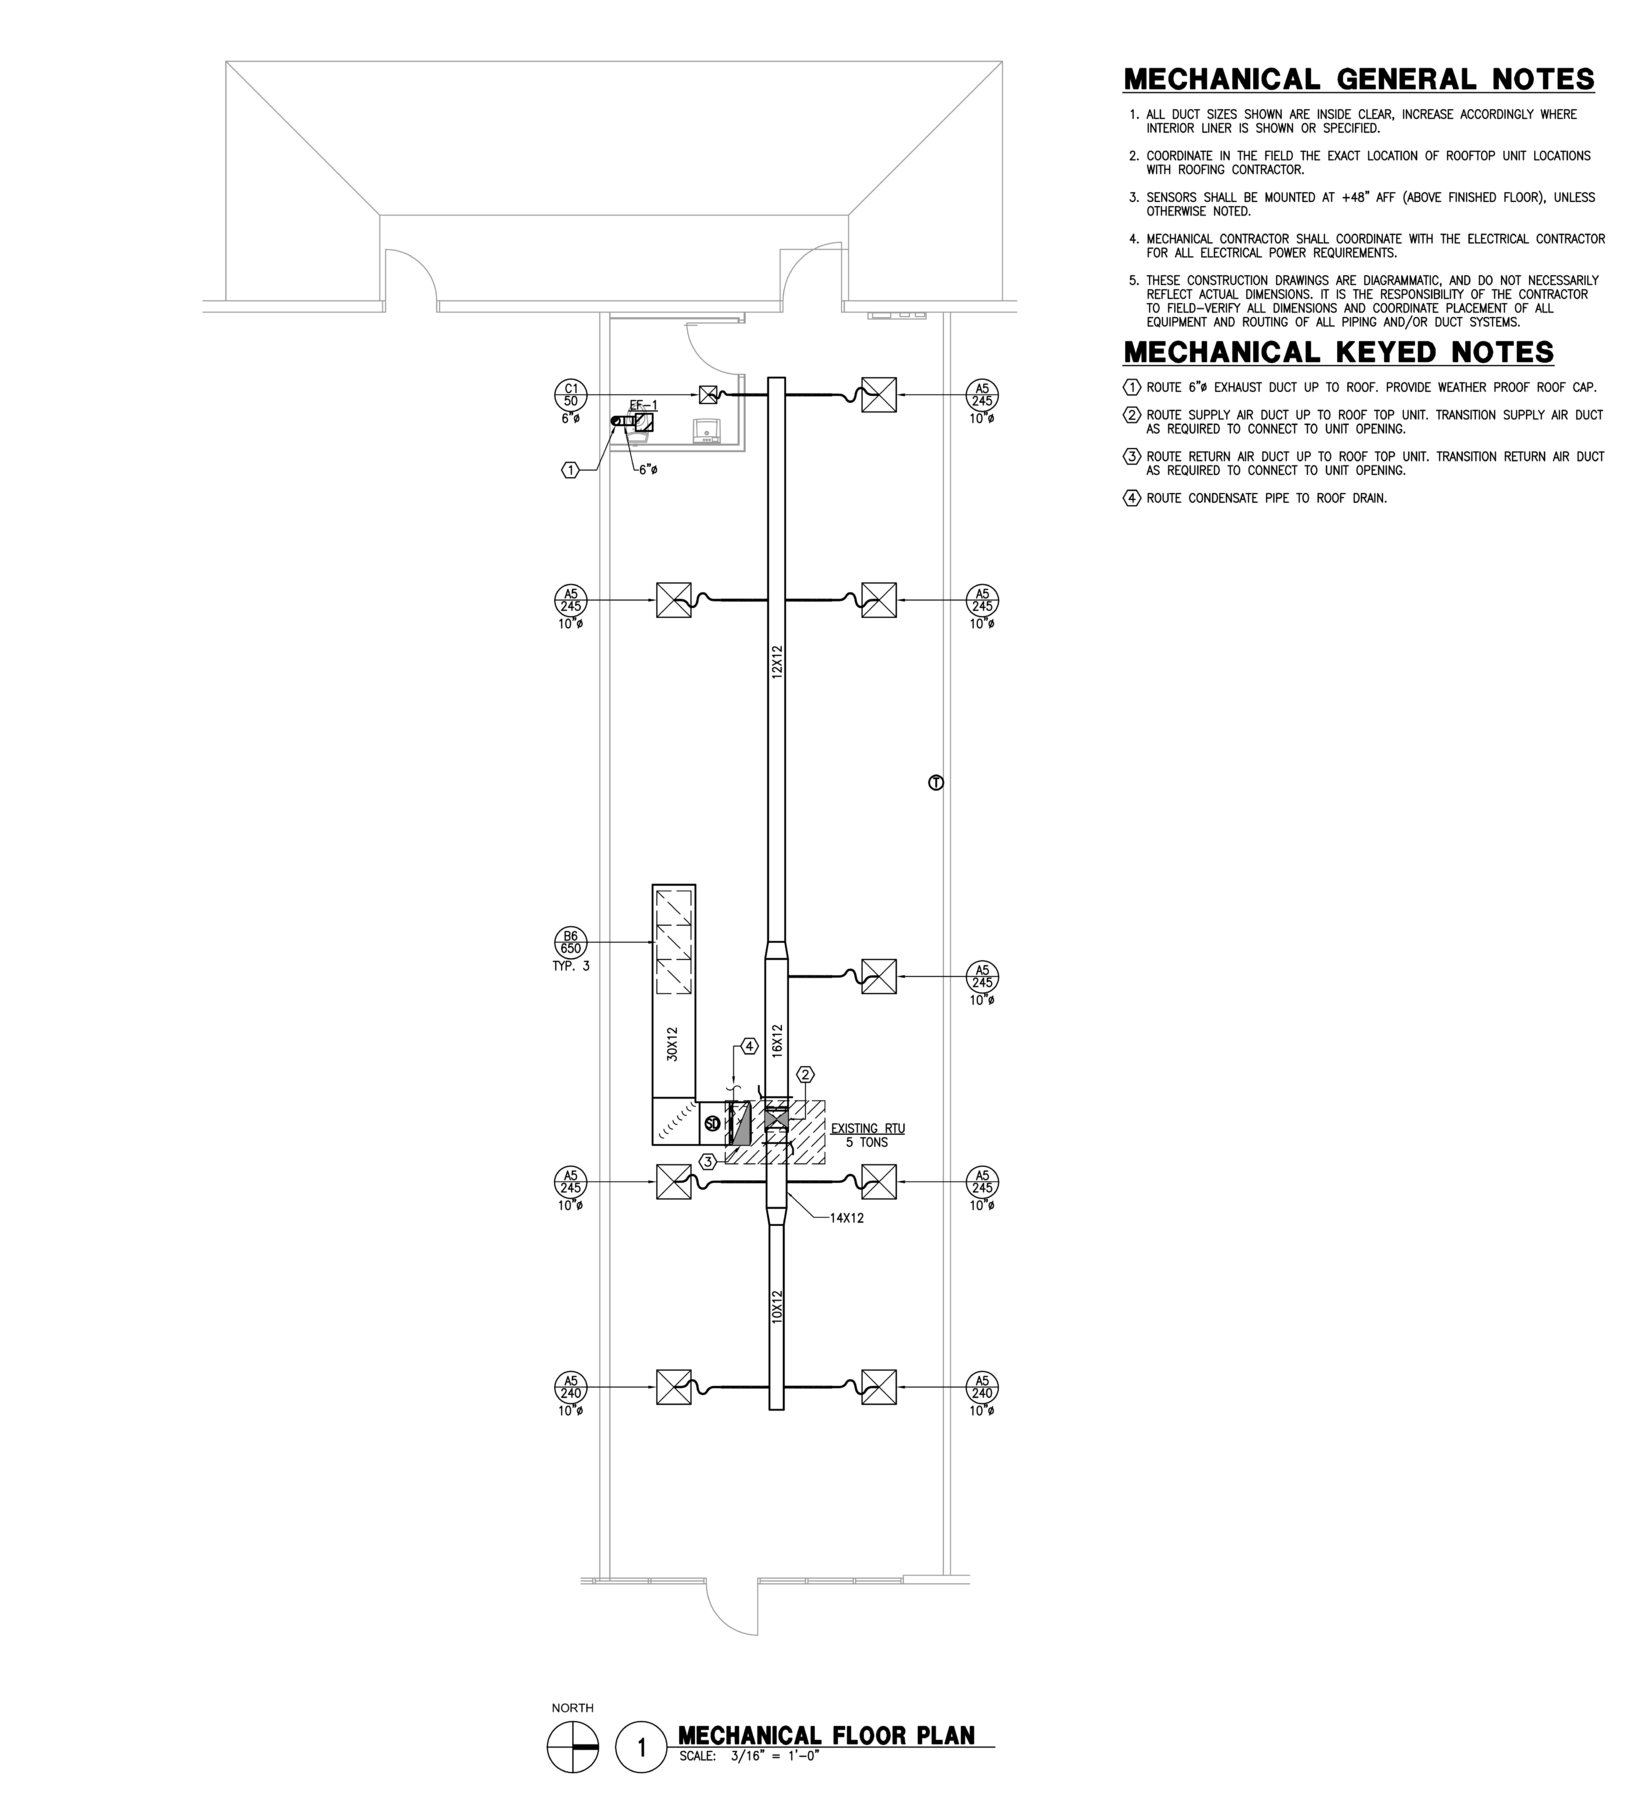 Autocad Piping Layout Lease Space